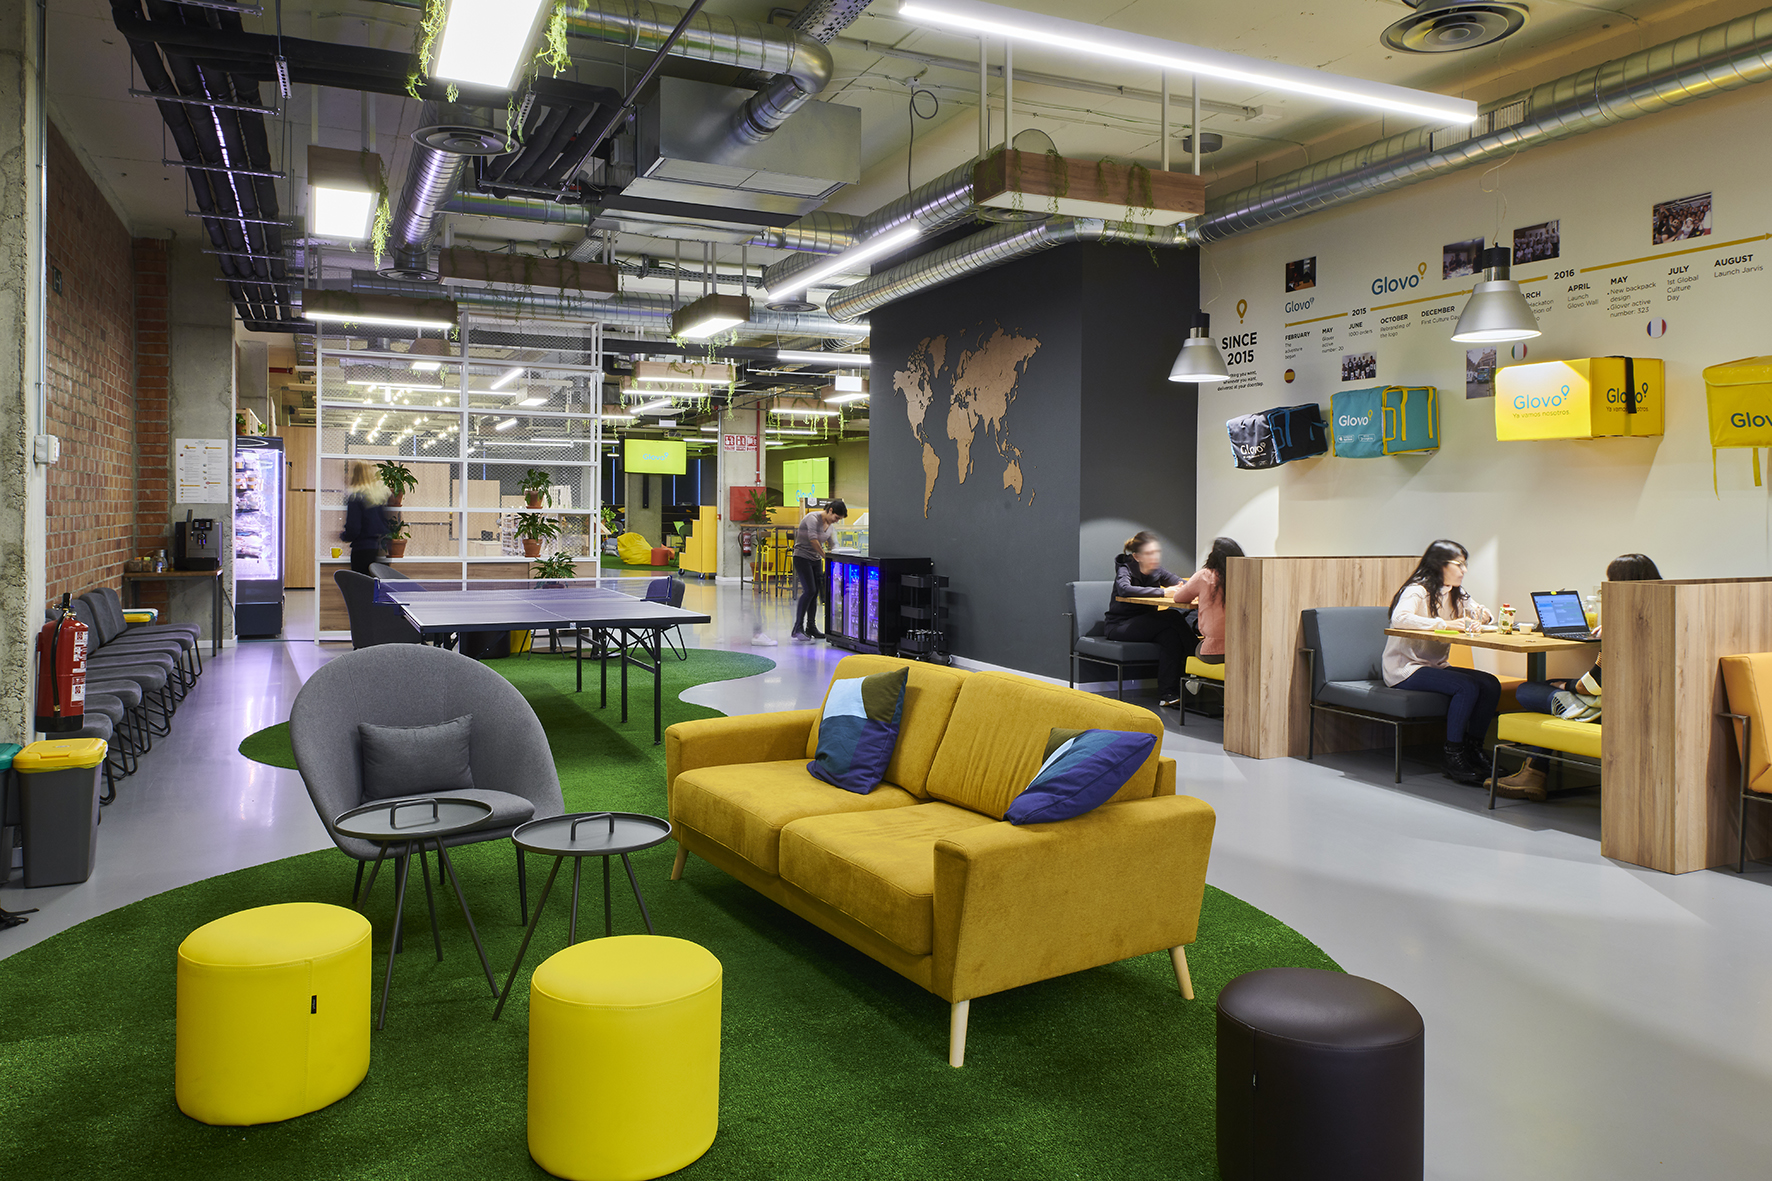 Glovo offices in Barcelona, Spain